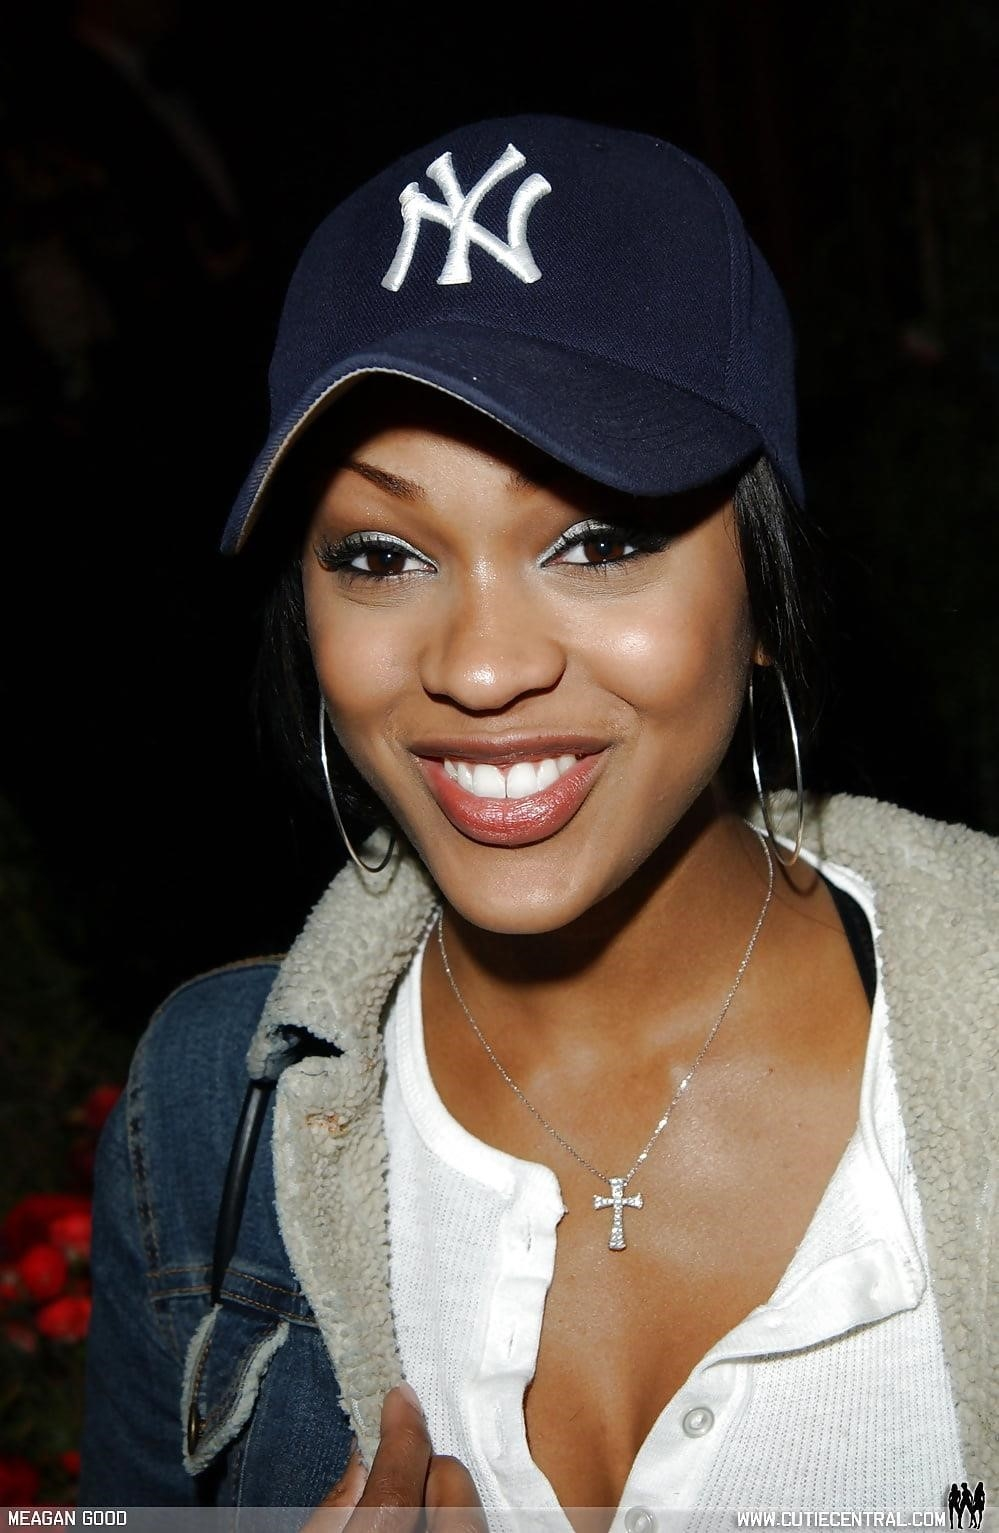 Meagan good nude pictures-6863